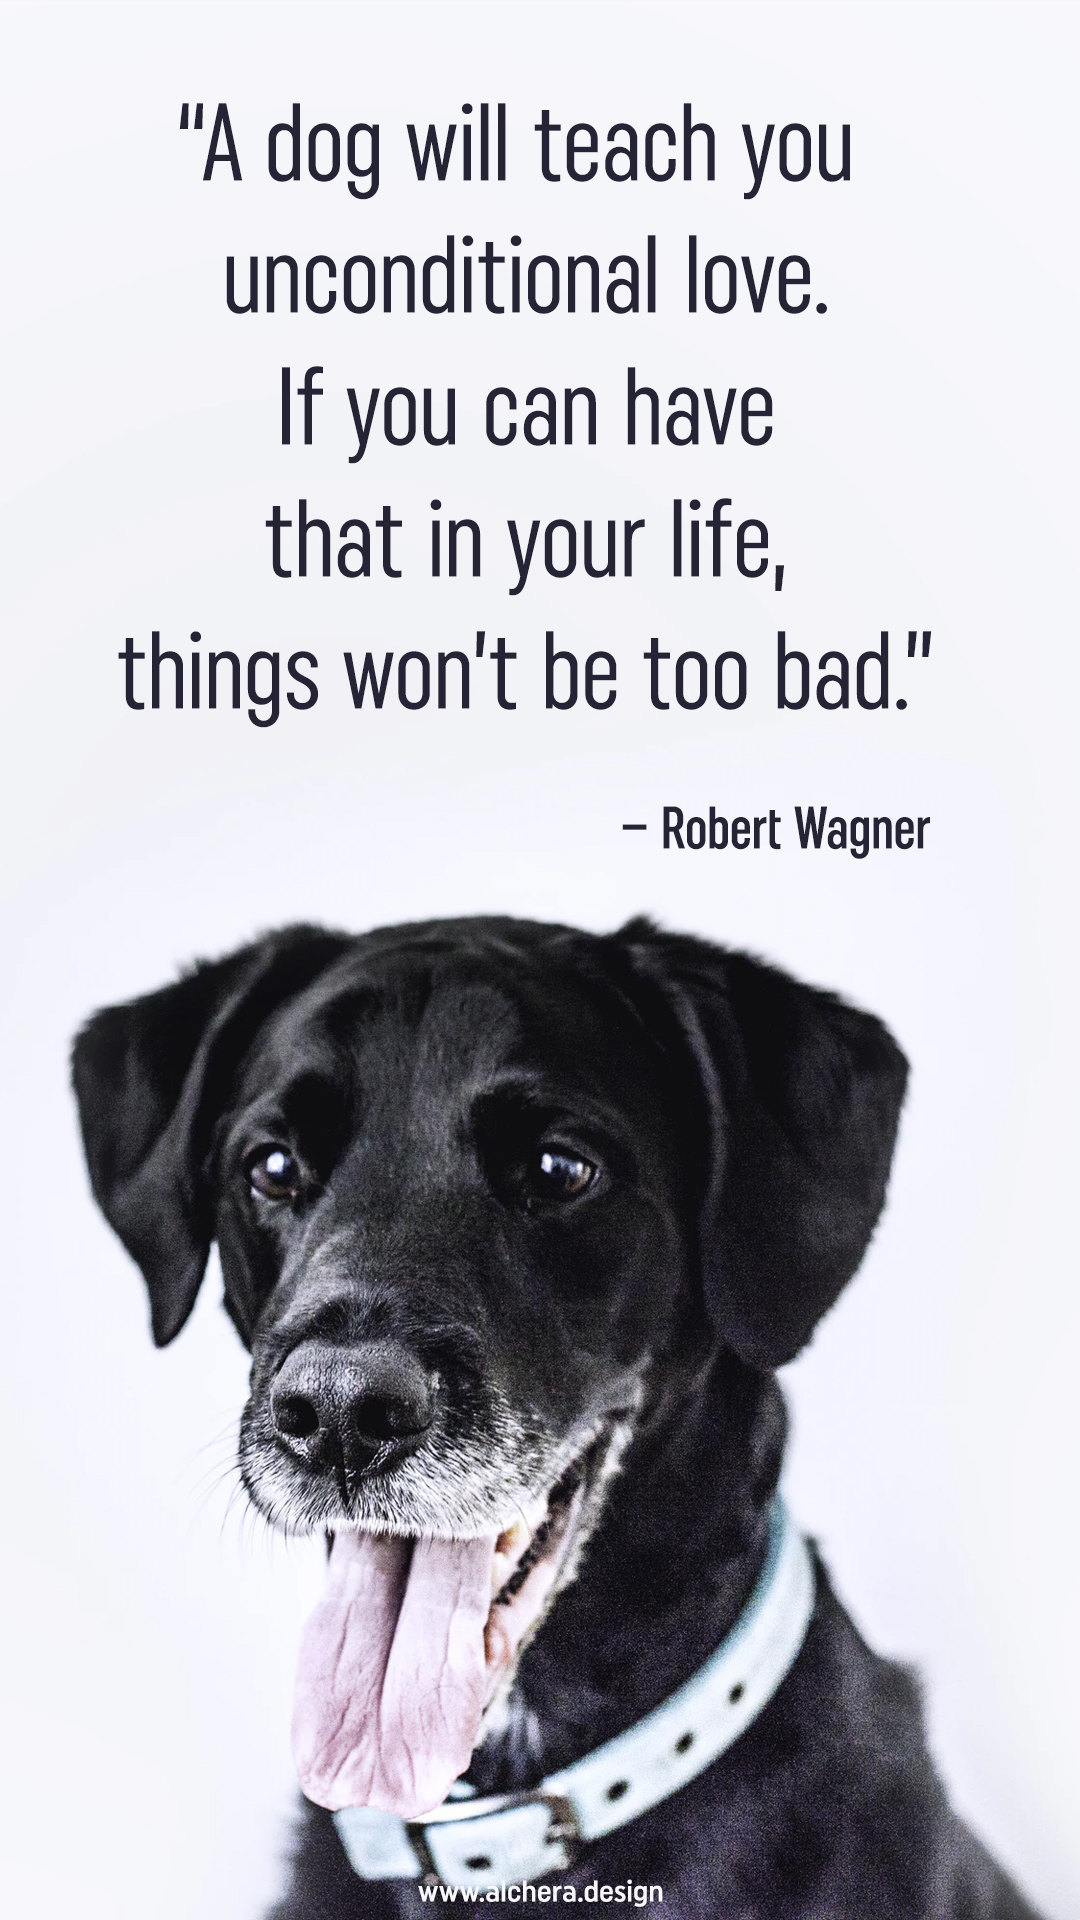 A dog will teach you unconditional love. If you can have that in your life, things wont be too bad.  Quote by Robert Wagner.